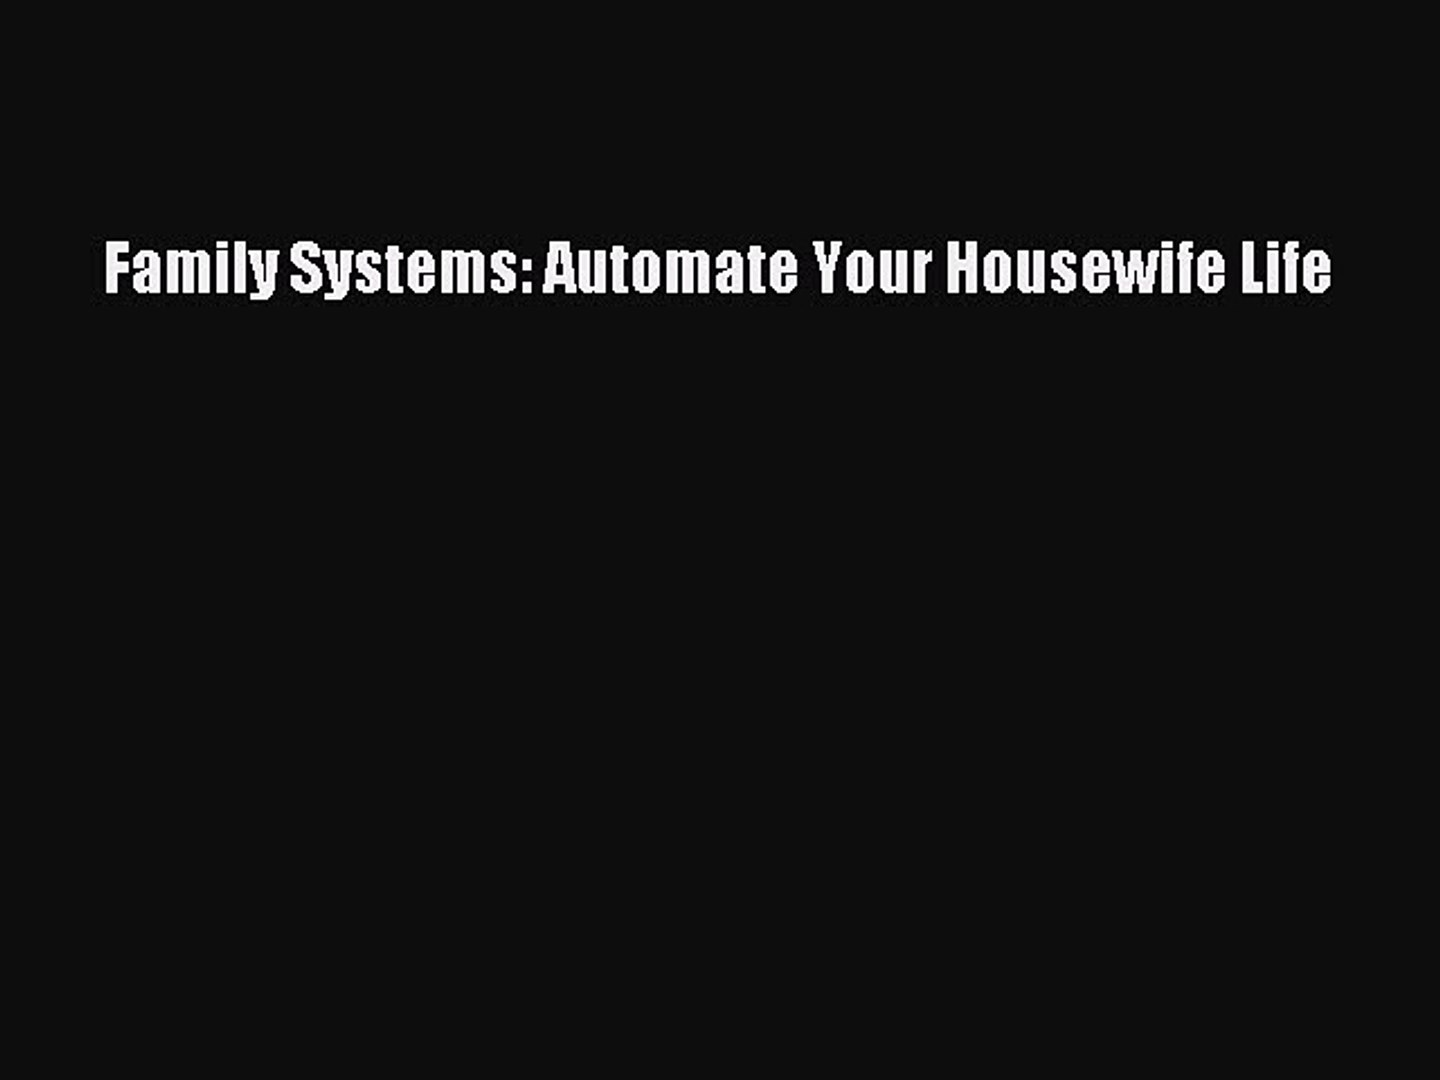 Download Family Systems: Automate Your Housewife Life Ebook Online